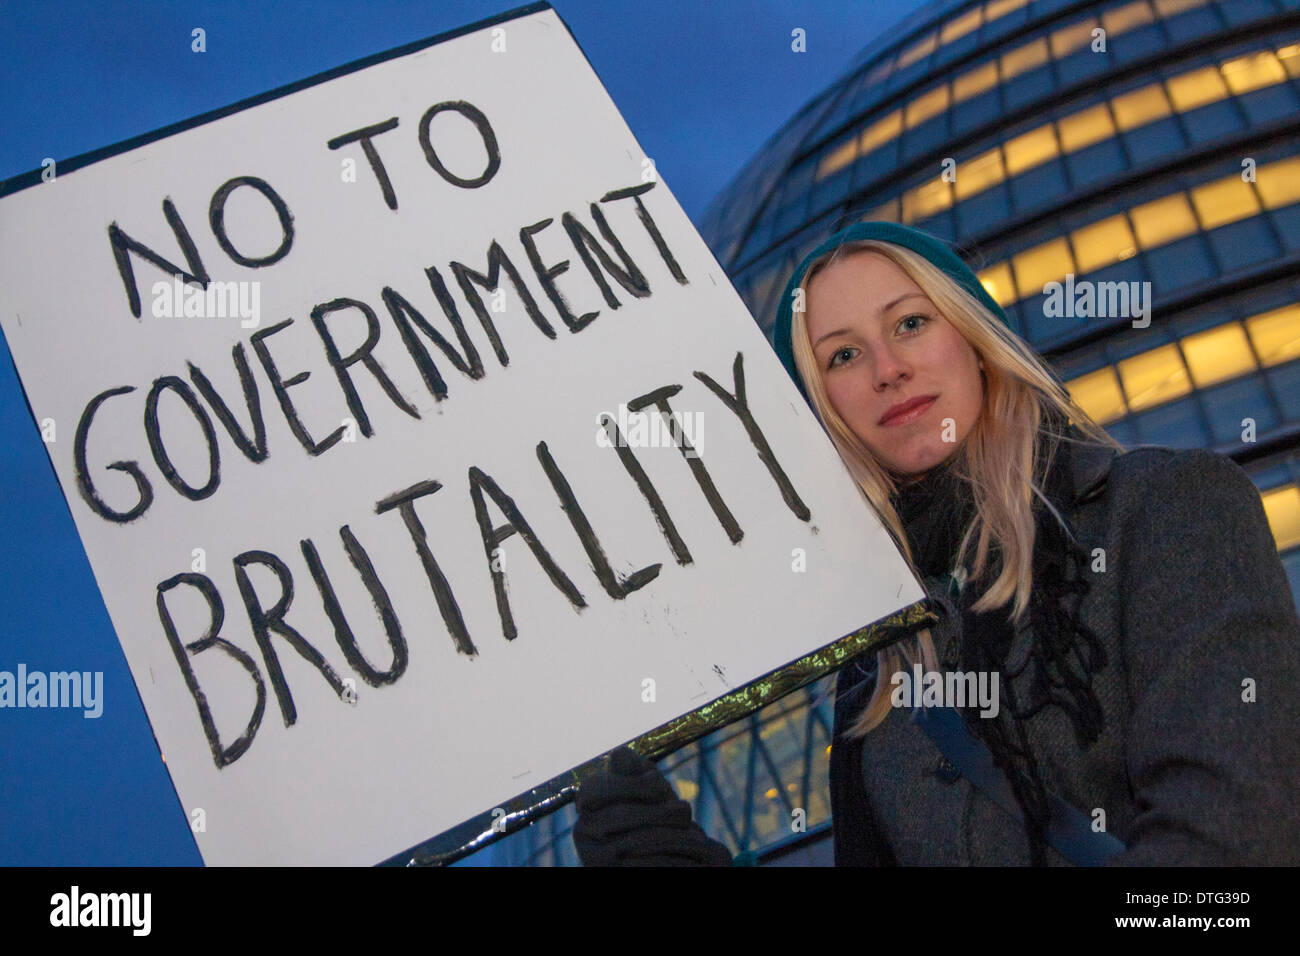 London, UK. 17th Feb 2014. . Dozens gather to protest against Mayor Boris Johnson's plans to bring in water cannons to subdue street demonstrations. Credit:  Paul Davey/Alamy Live News - Stock Image